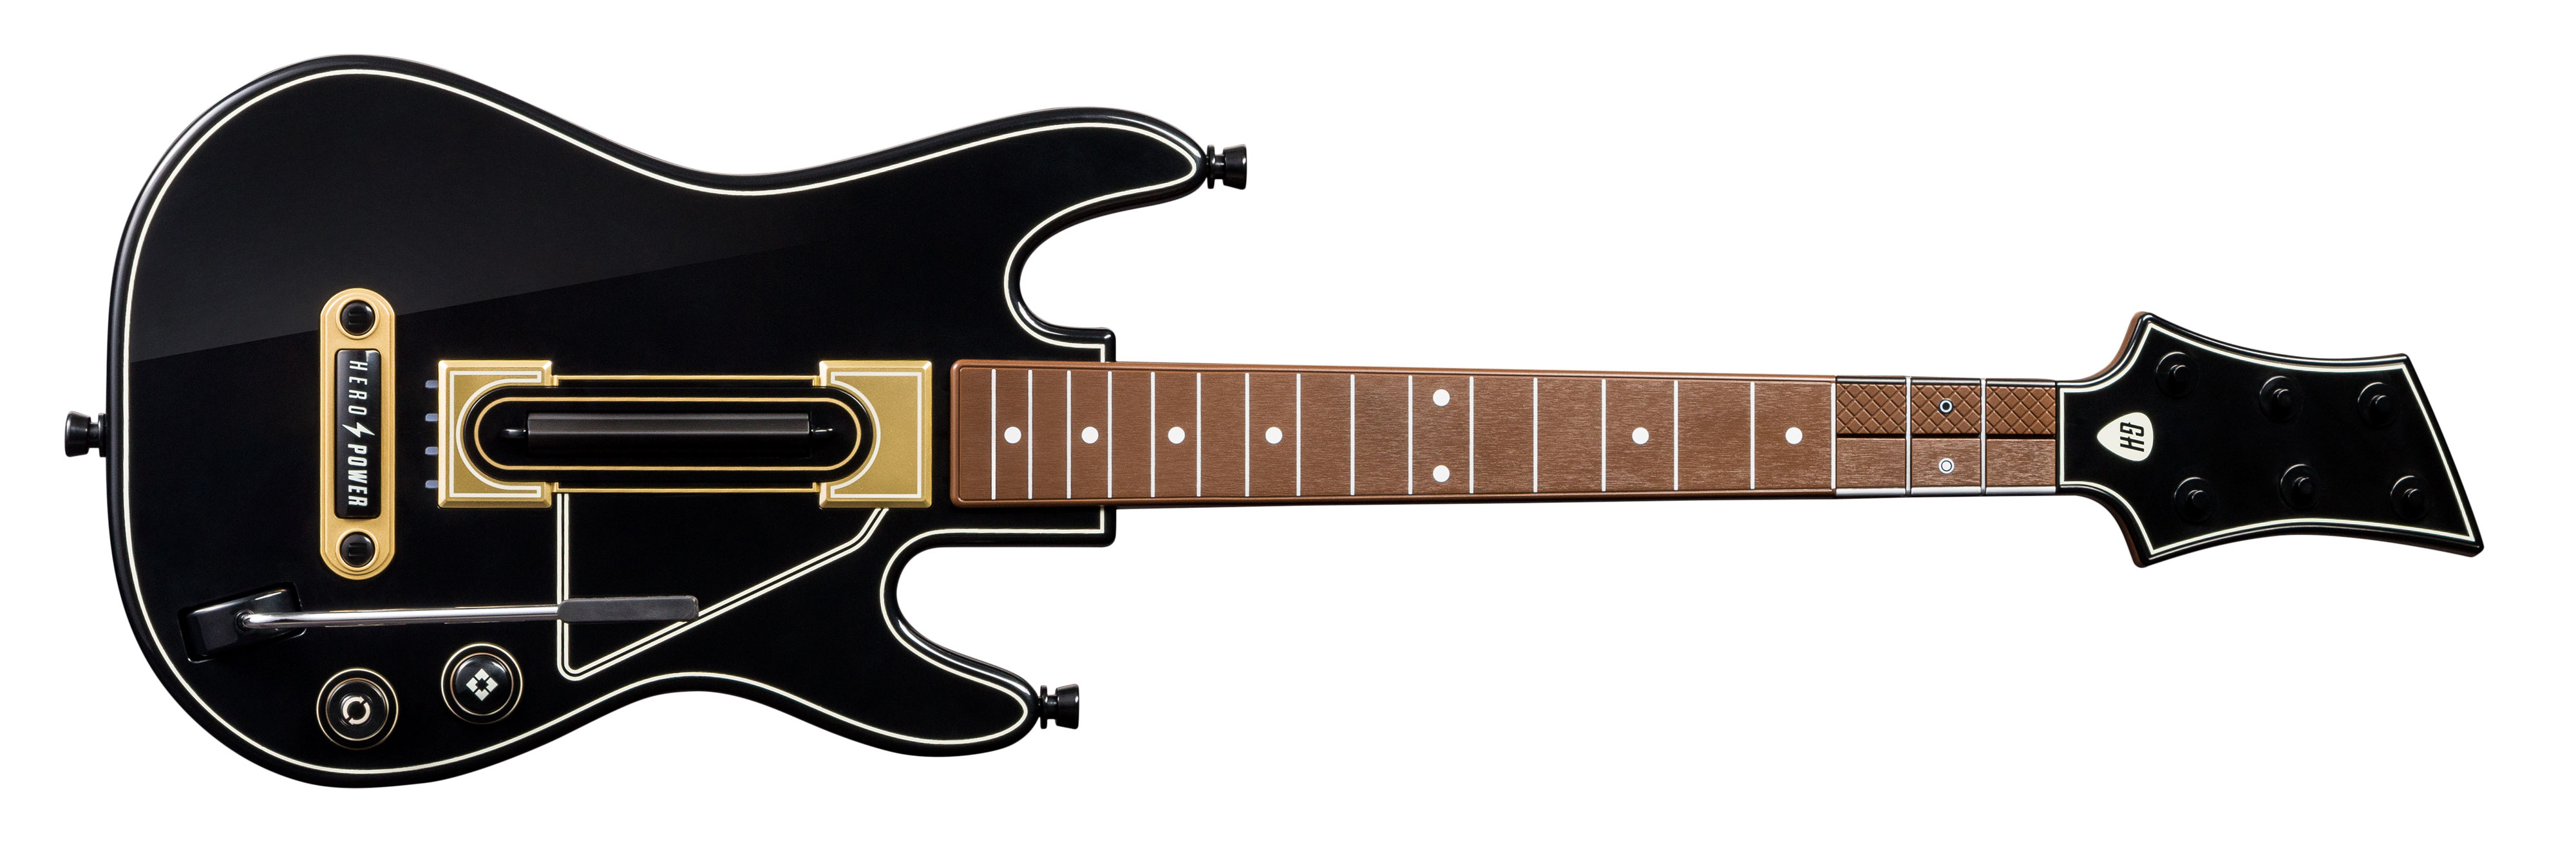 The final version of the <em>Guitar Hero Live</em> guitar.